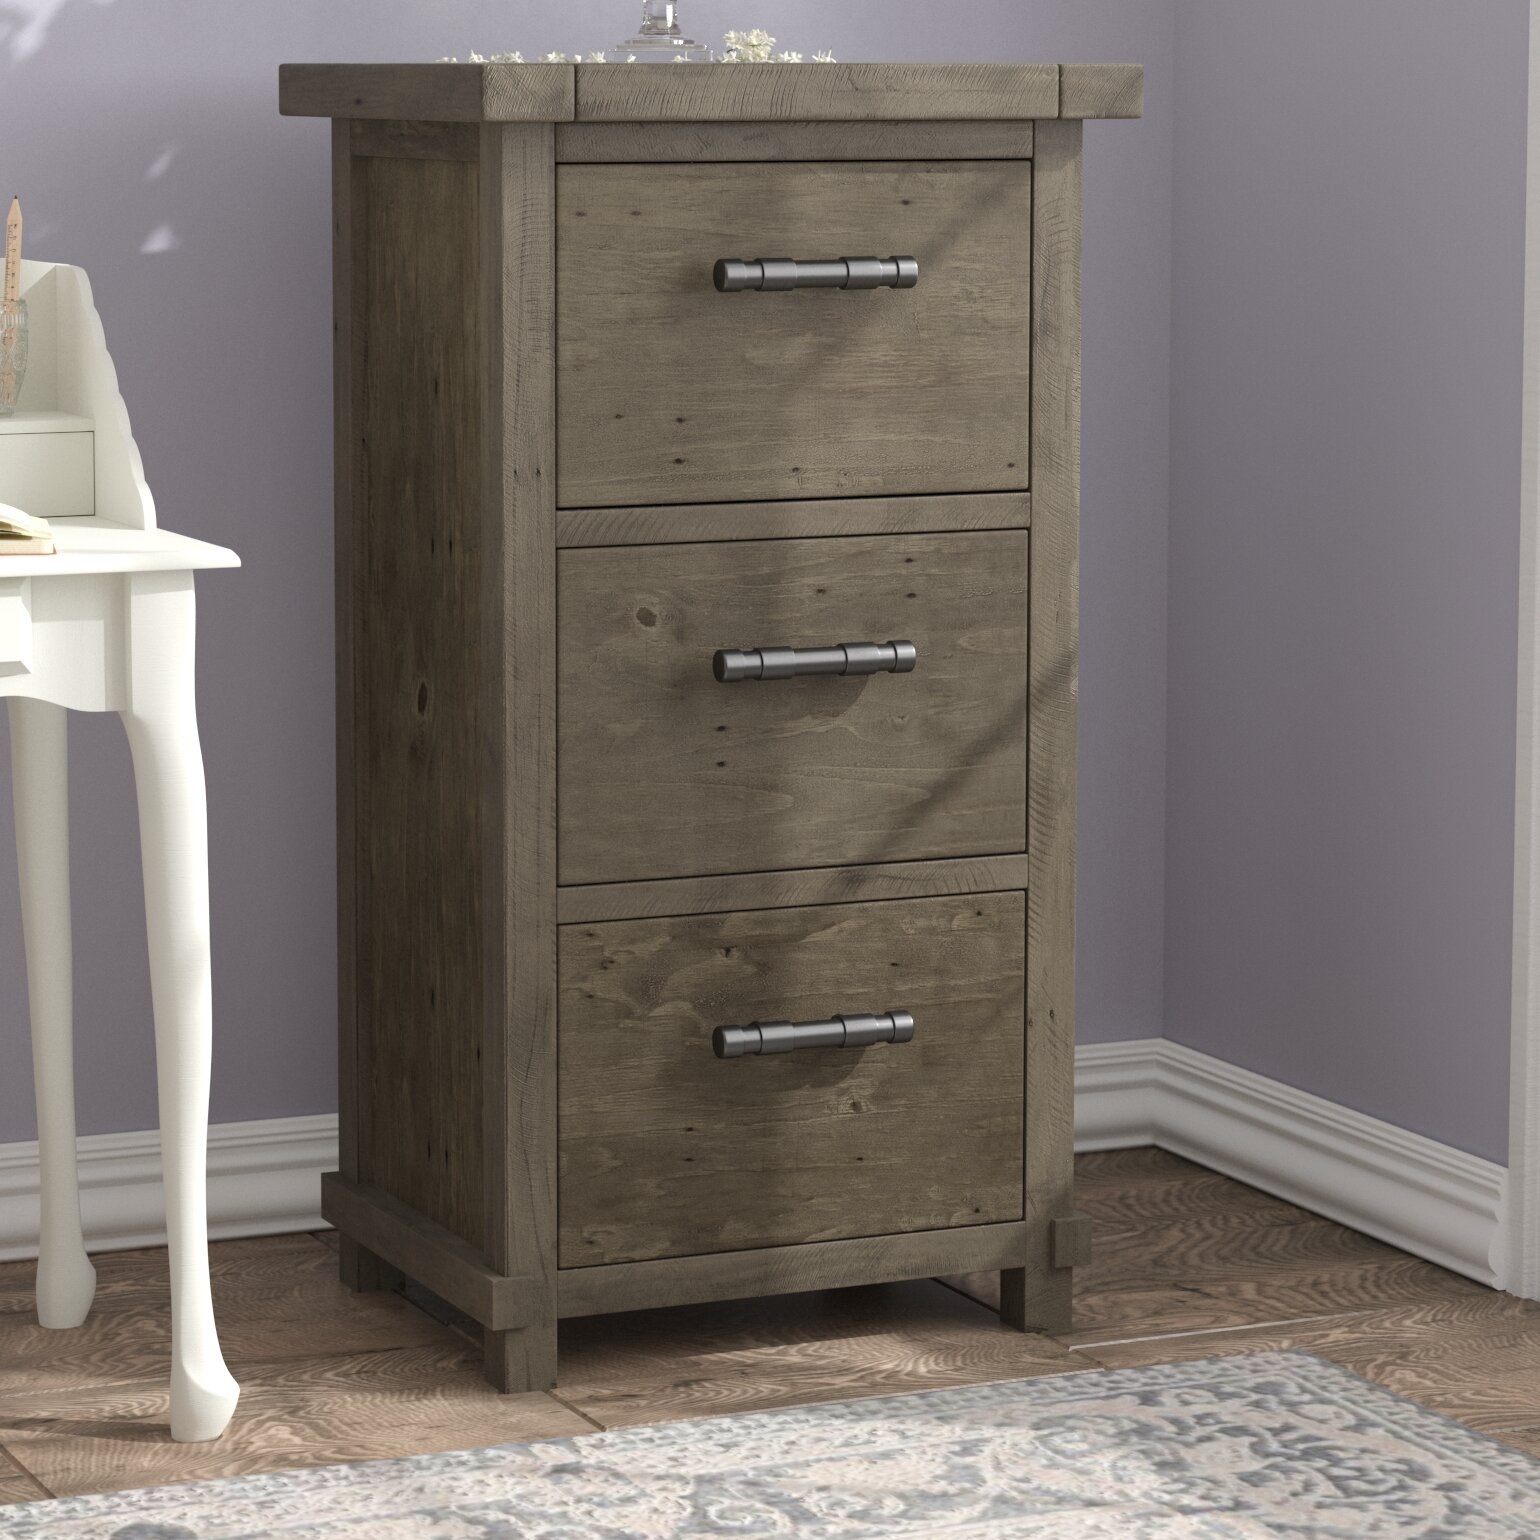 Gertrude 3 Drawer Vertical Filing Cabinet